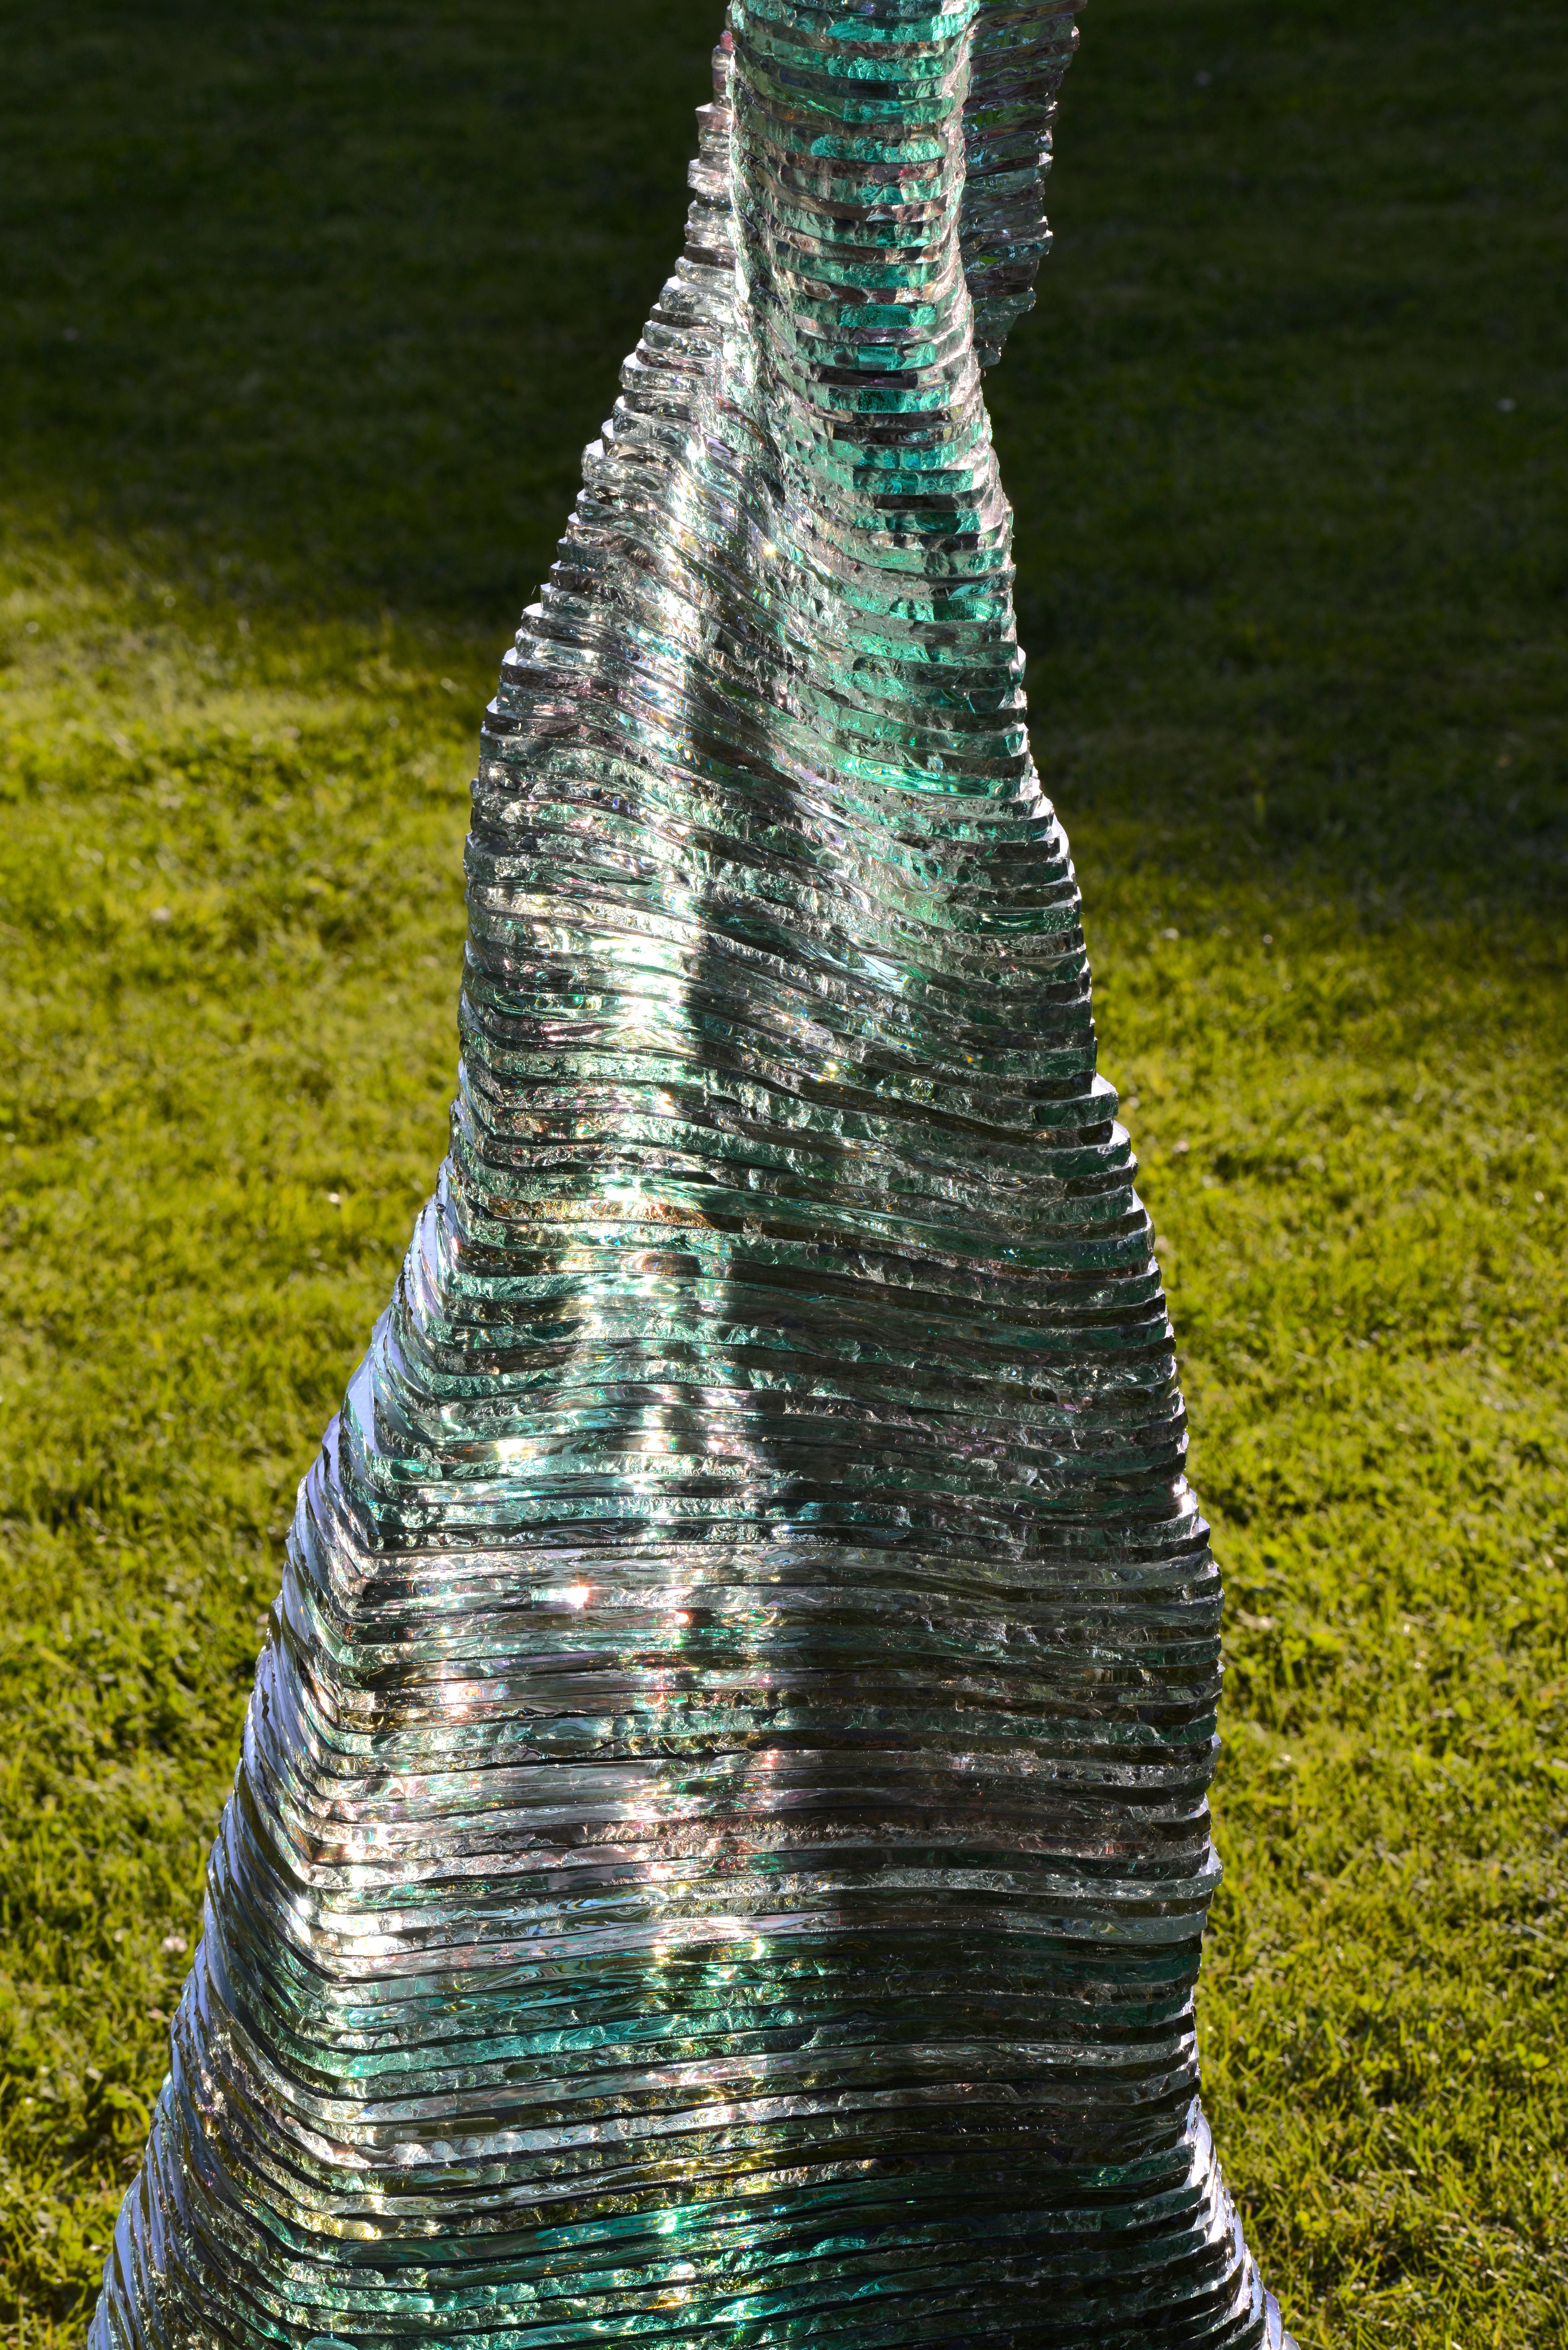 Ascendit Layered Glass Sculpture